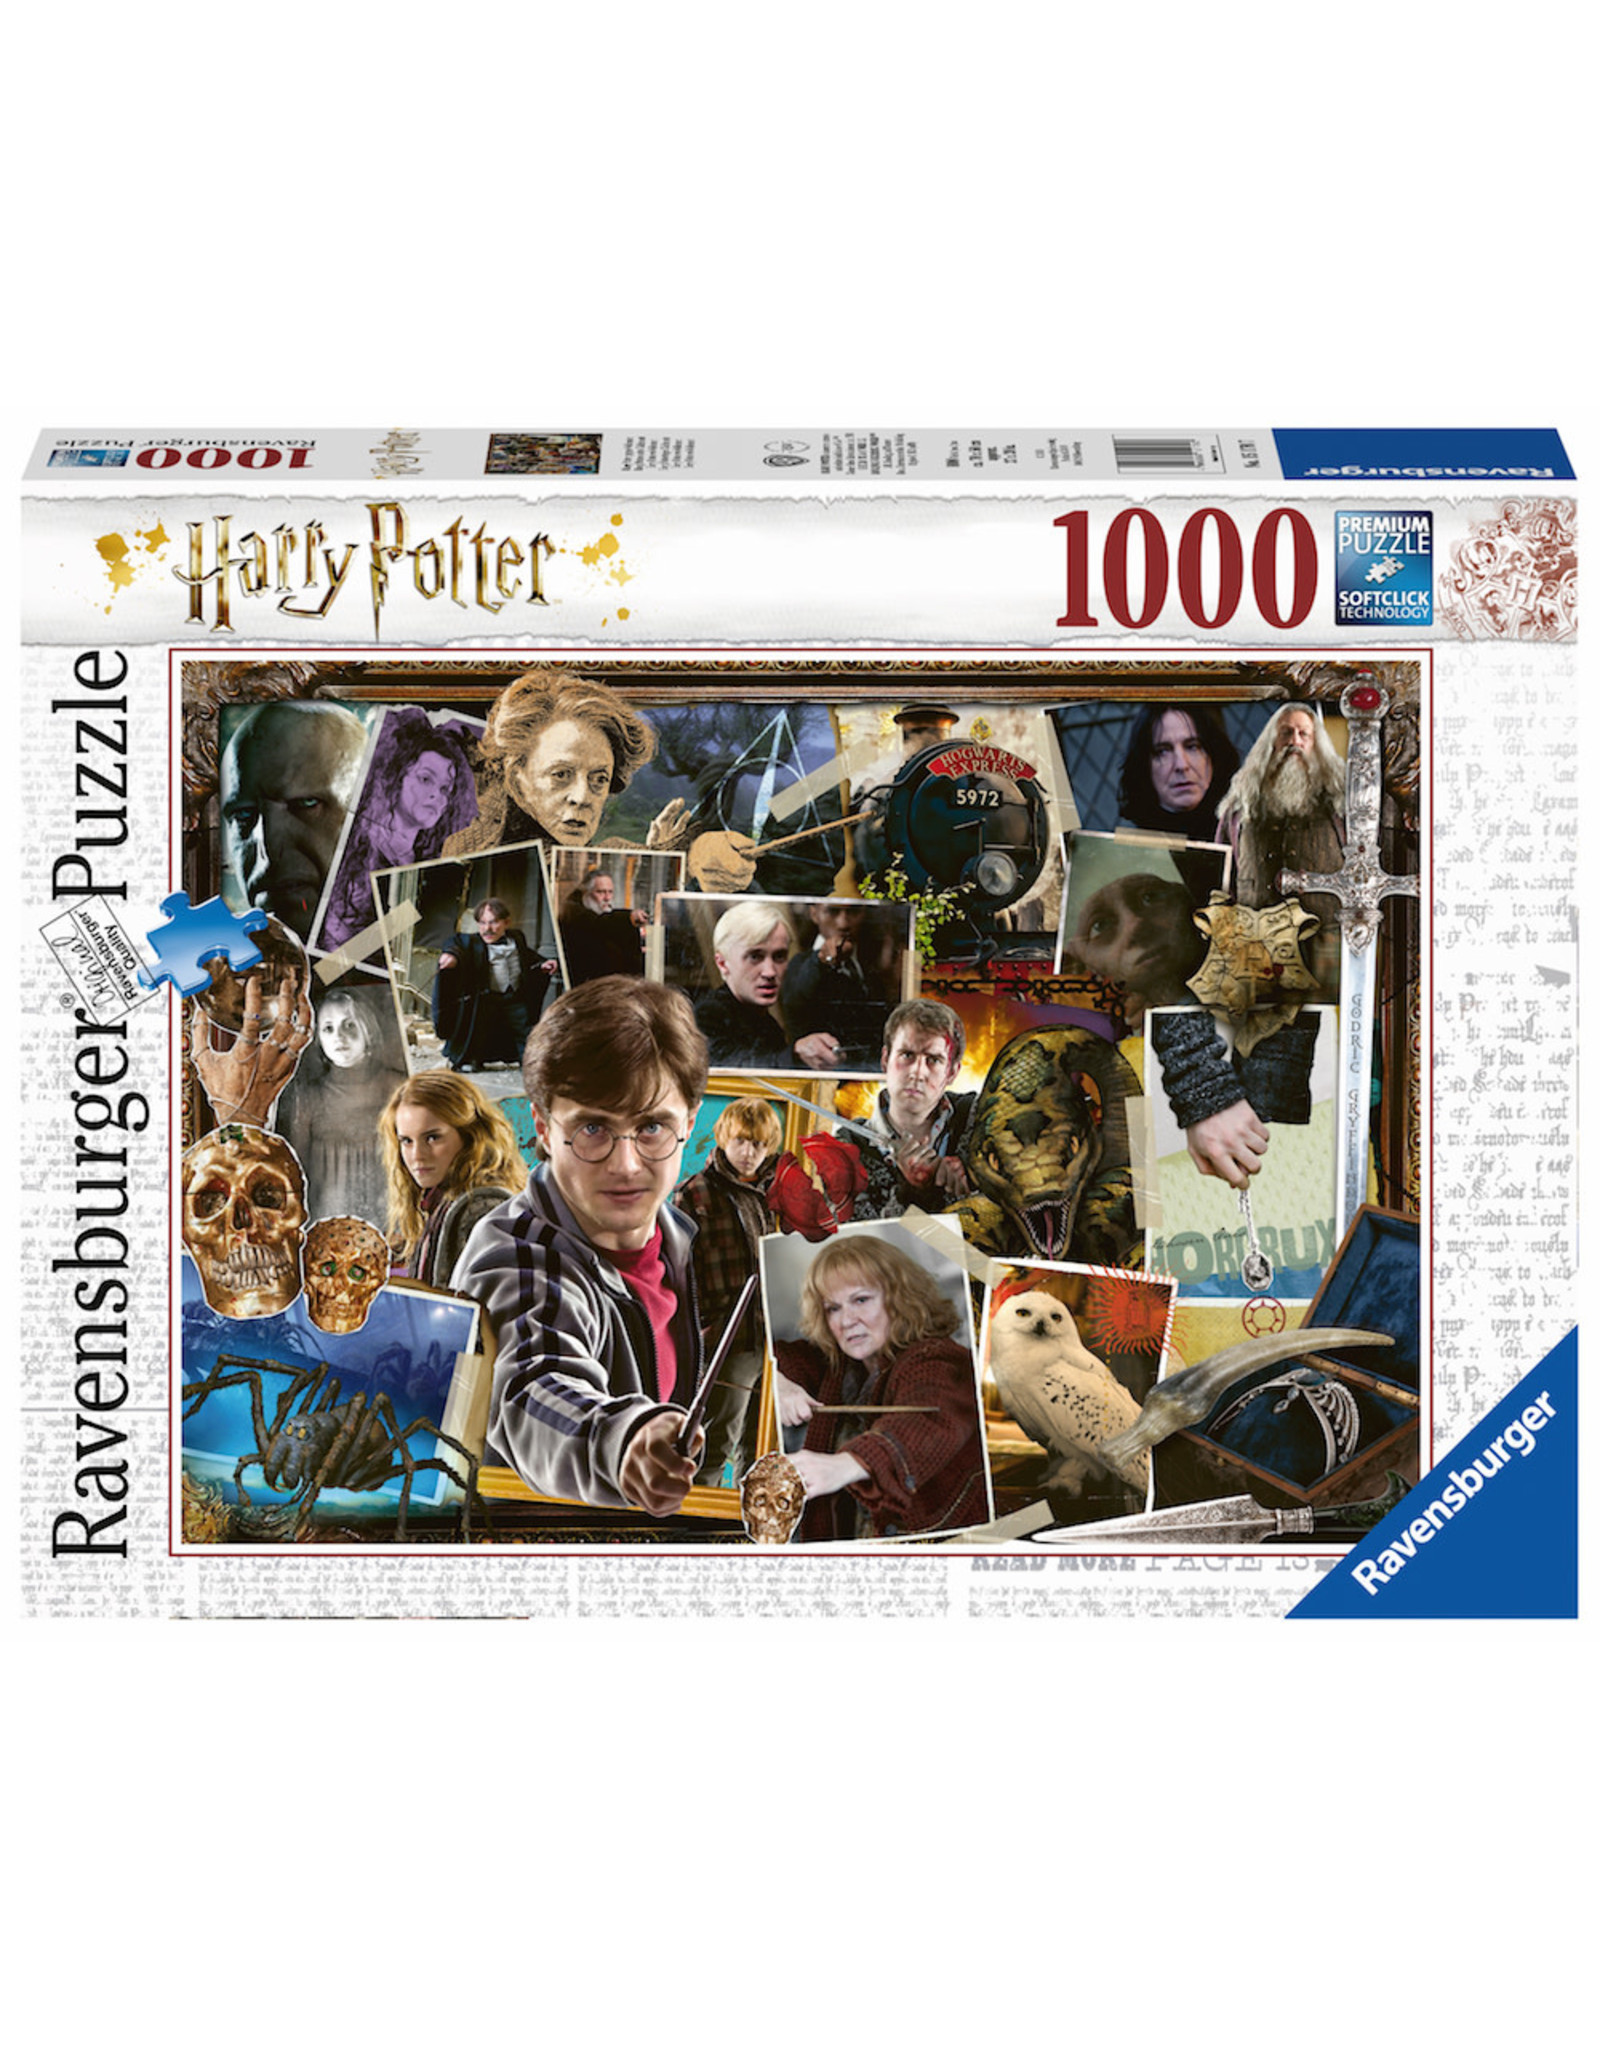 Ravensburger HARRY POTTER Puzzle 1000P - Gallery